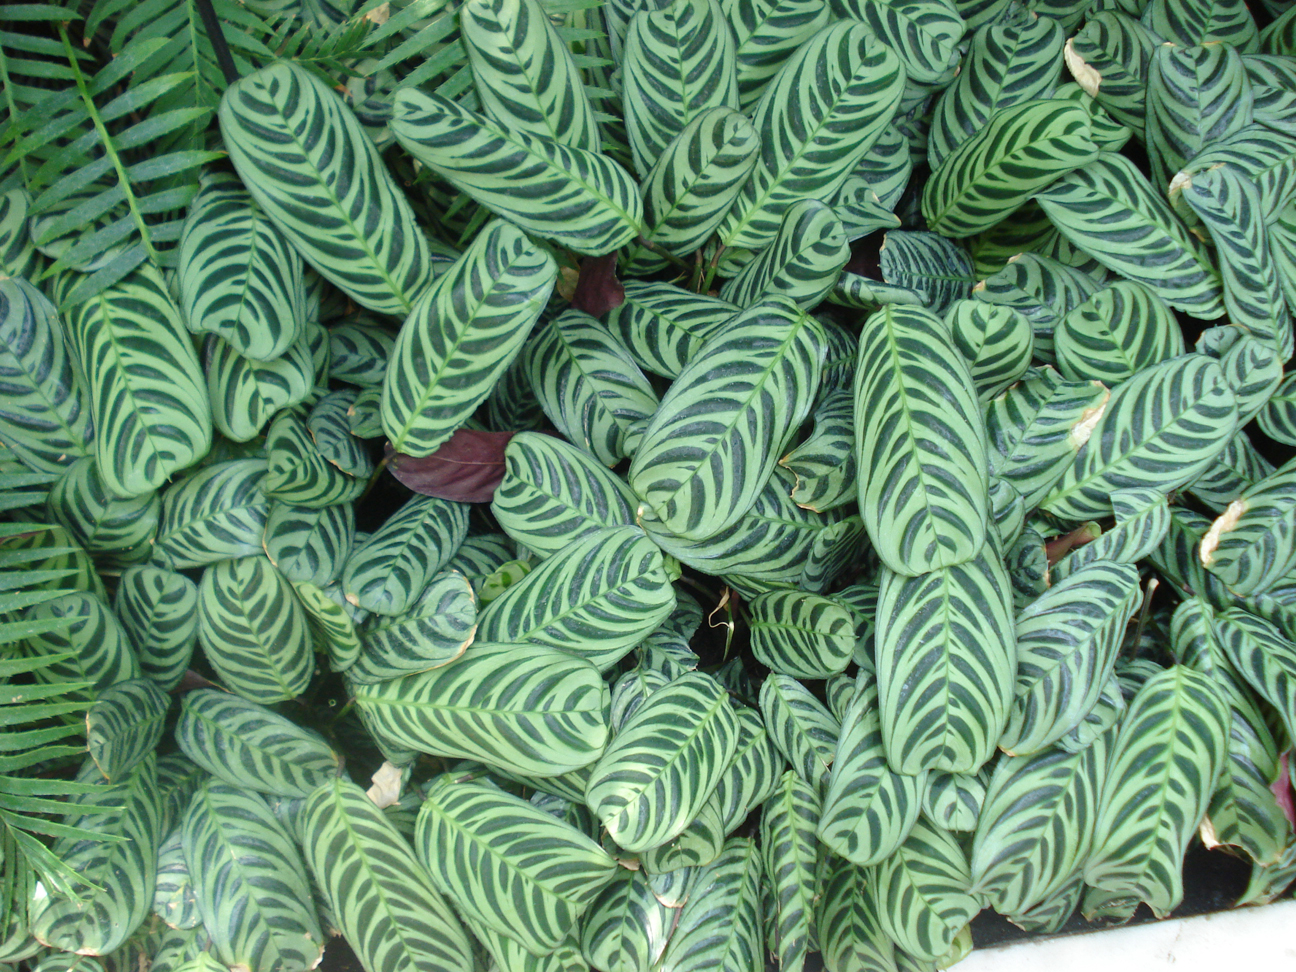 Leaves, Como Park Conservatory, Mary Warner, 2009.